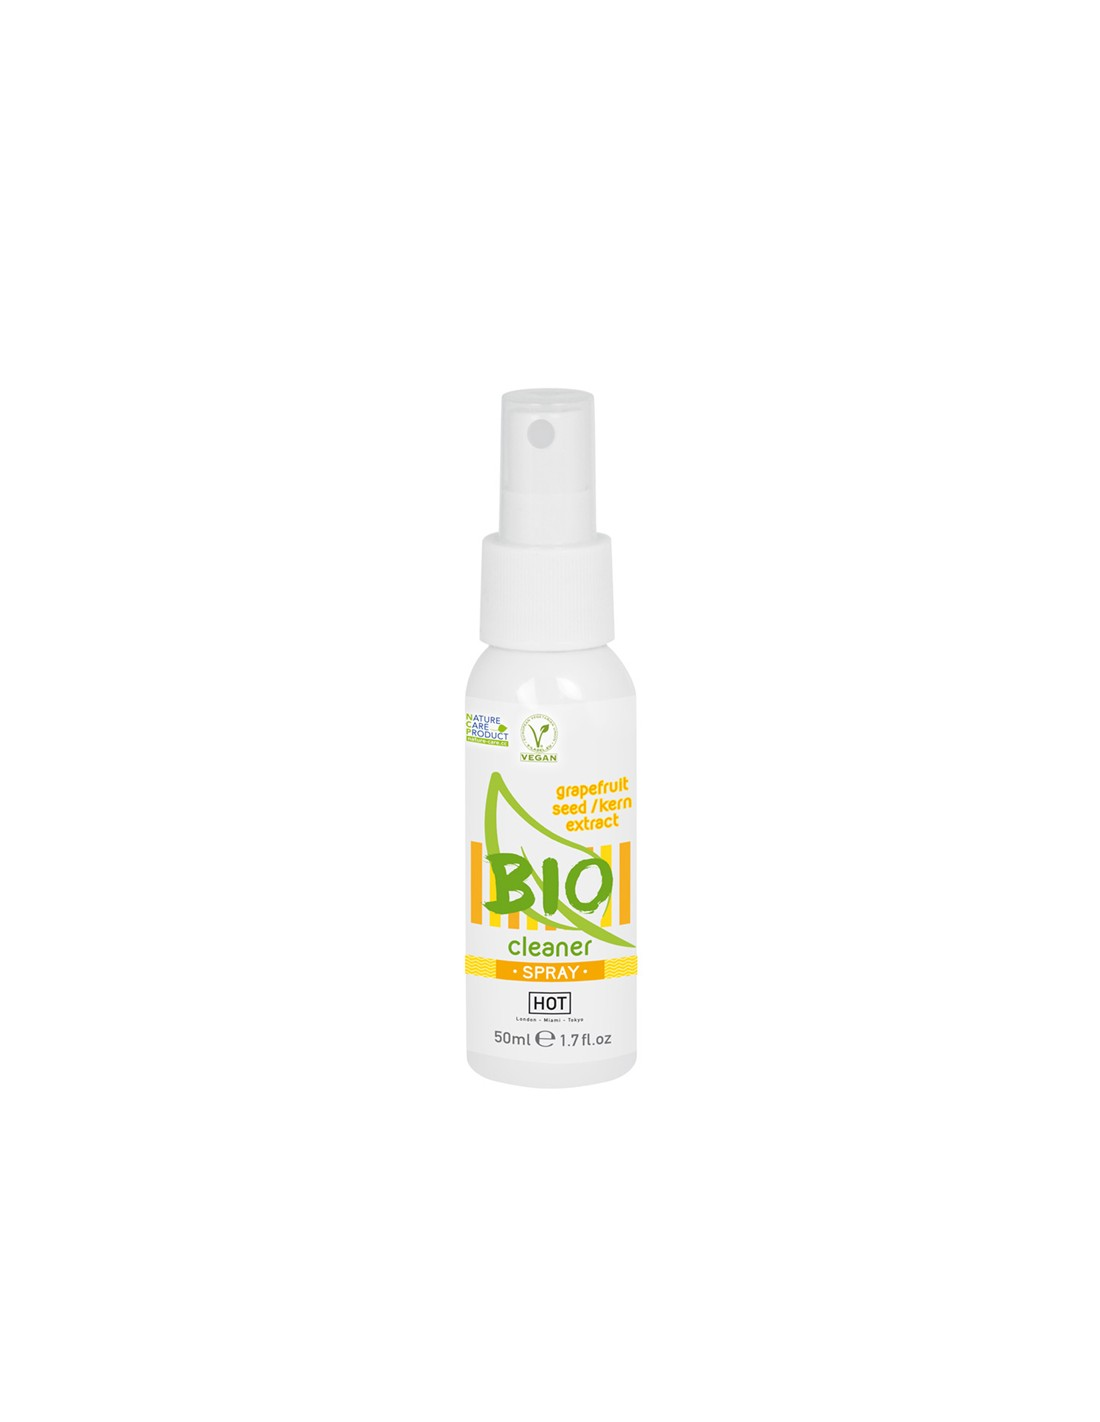 HOT BIO Cleaner Spray - 50ml